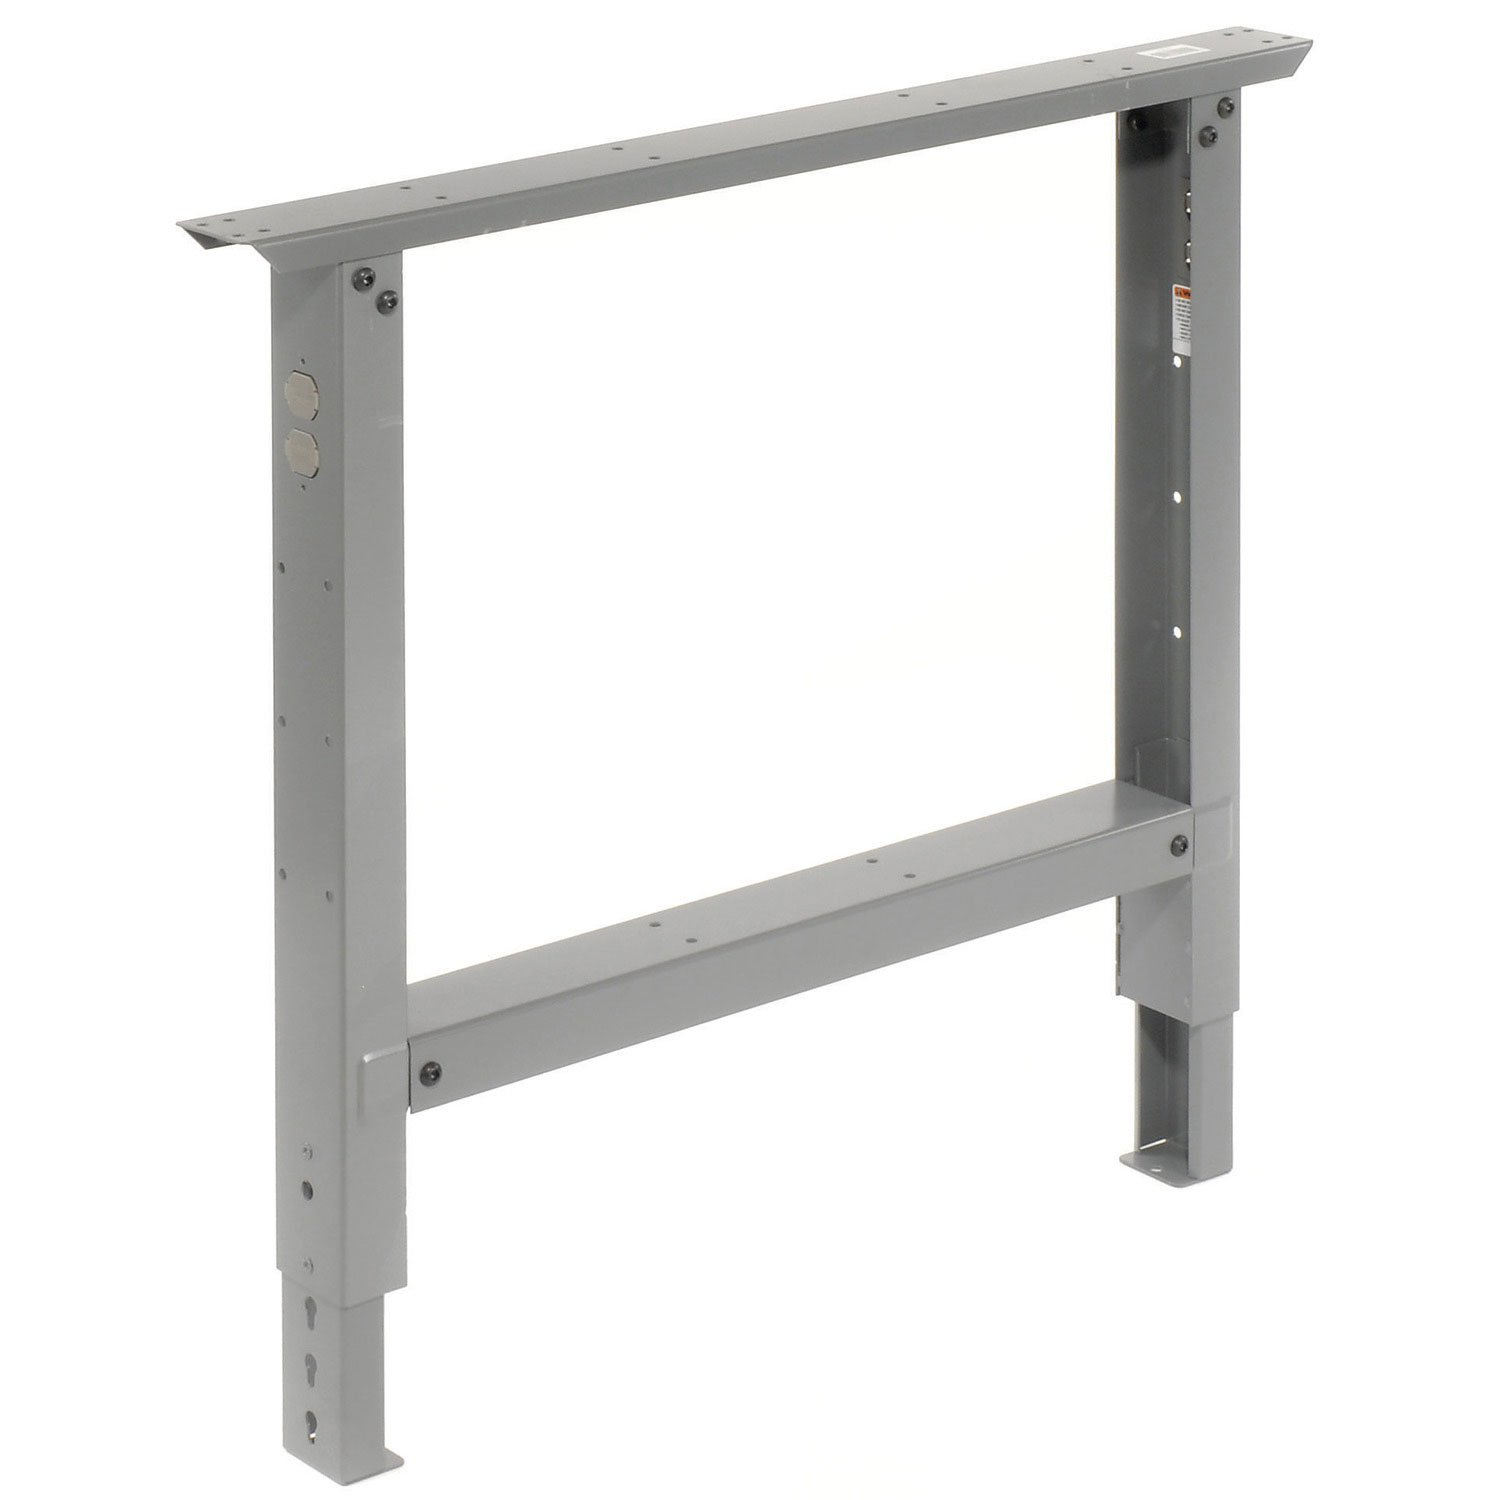 Adjustable Height Leg For 36'' Benches, 27-7/8 To 35-3/8, Gray